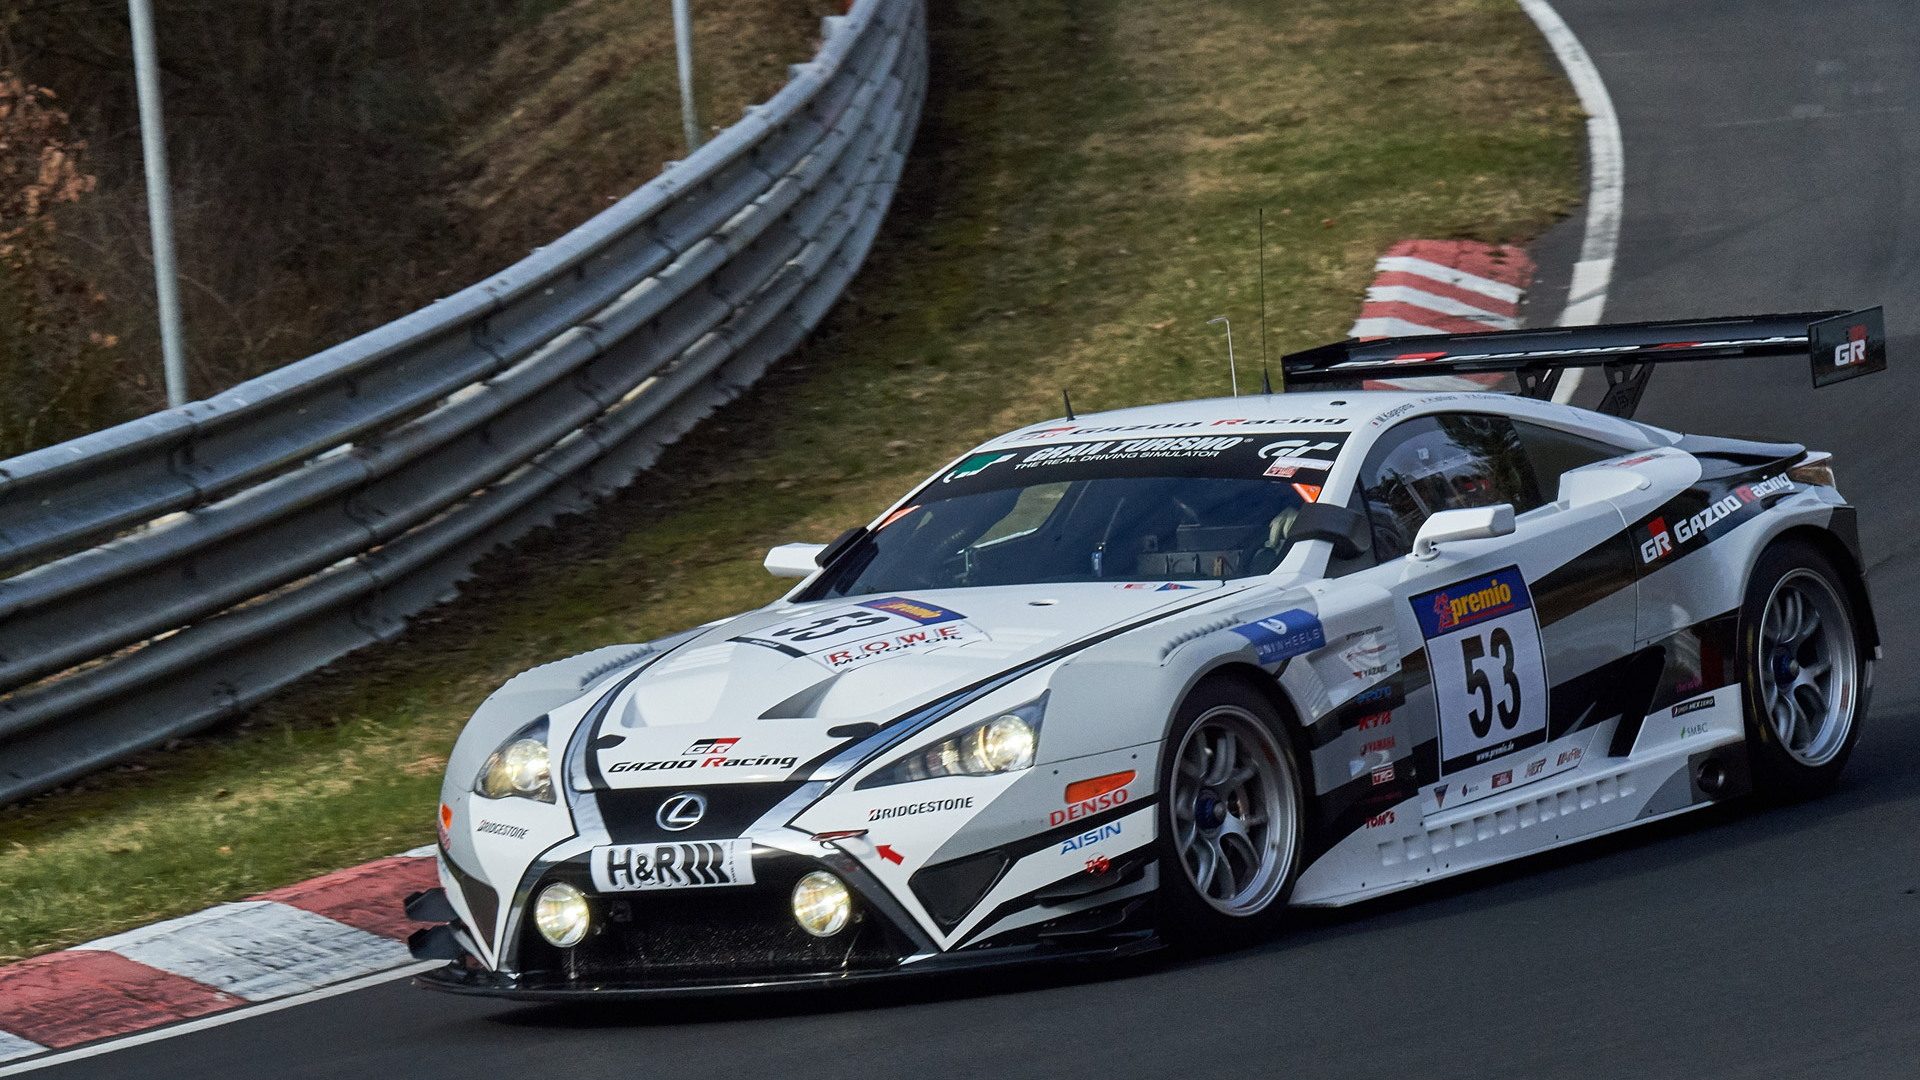 Lexus Gazoo Racing in the Nürburgring 24 Hours